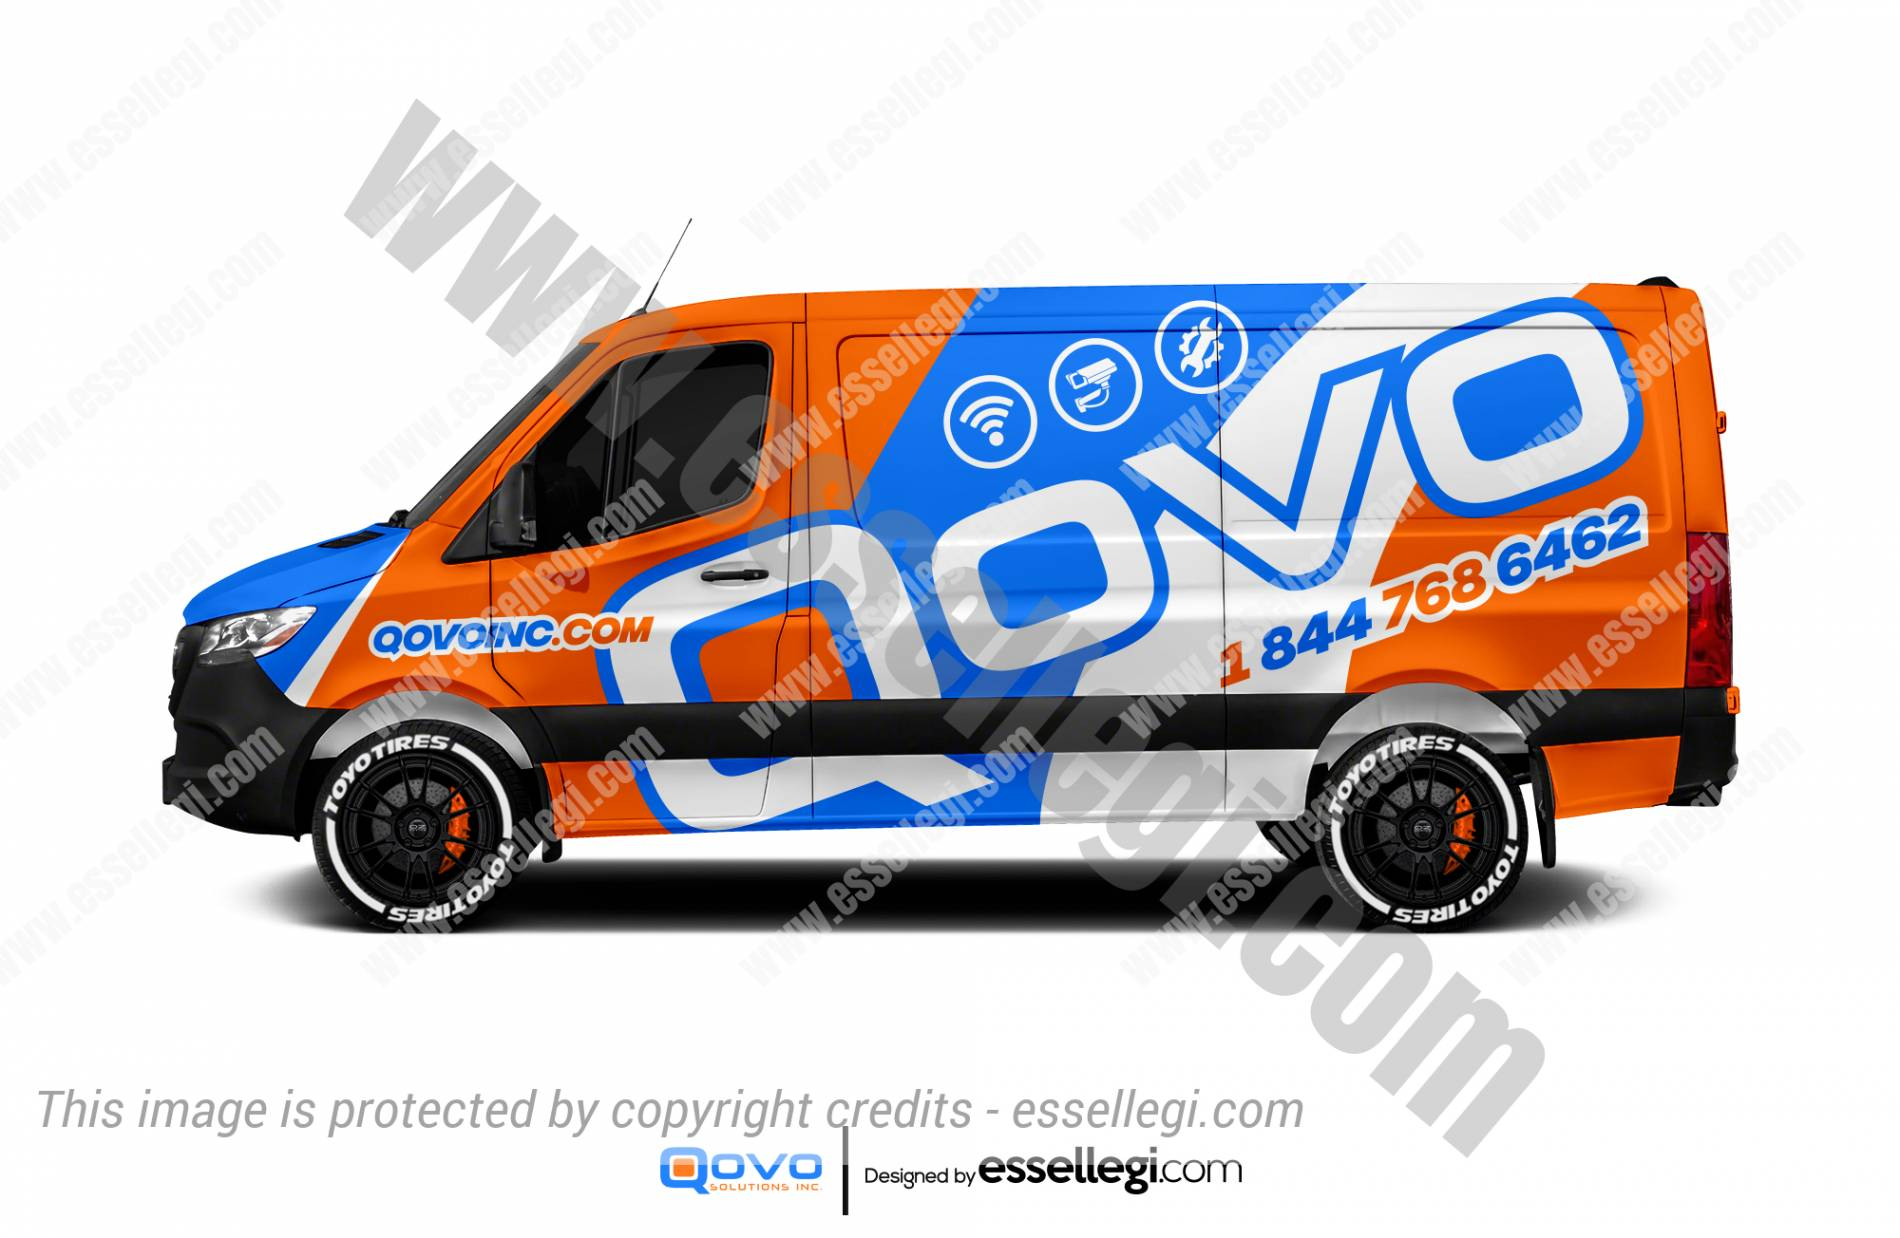 Mercedes Sprinter Wrap Design. Mercedes Sprinter Wrap | Van Wrap Design by Essellegi. Van Signs, Van Signage, Van Wrapping, Van Signwriting, Van Wrap Designer, Signs for Van, Van Logo, Van Graphic by Essellegi.